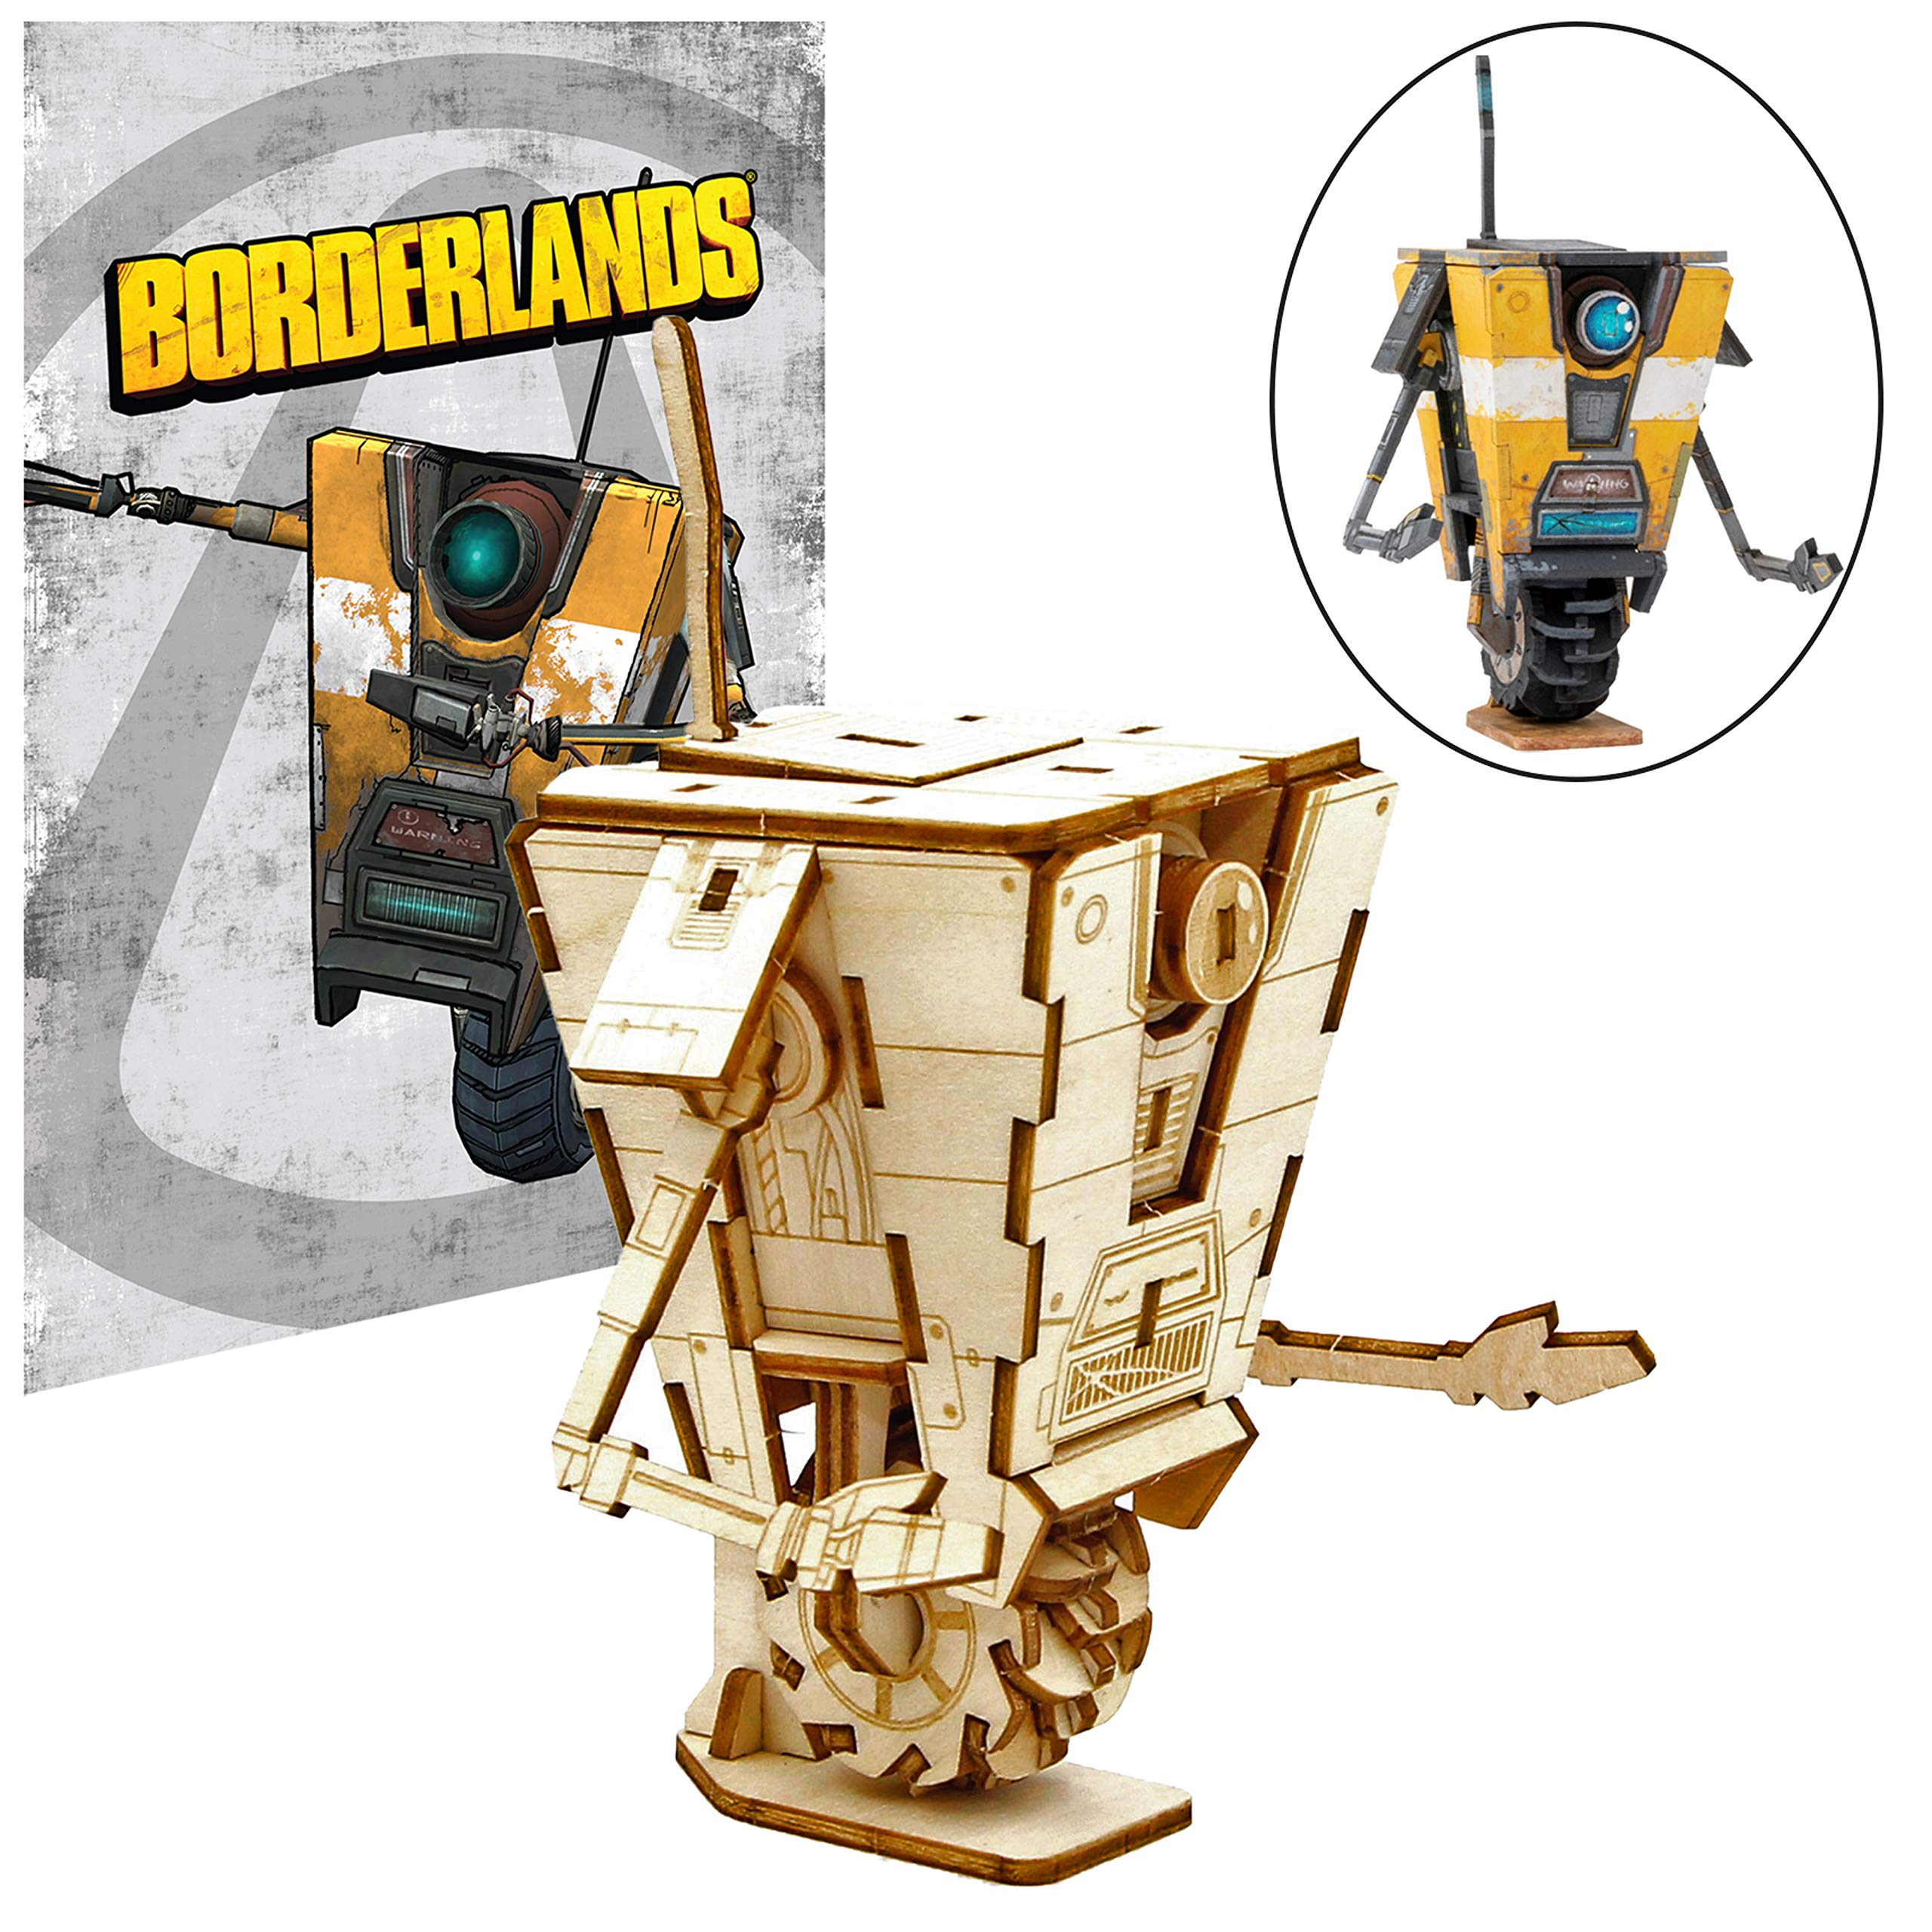 Borderlands Claptrap Poster and 3D Wood Model Figure Kit - Build, Paint and Collect Your Own Wooden Toy Model - 11x17 Poster - Teens and Adults,17+